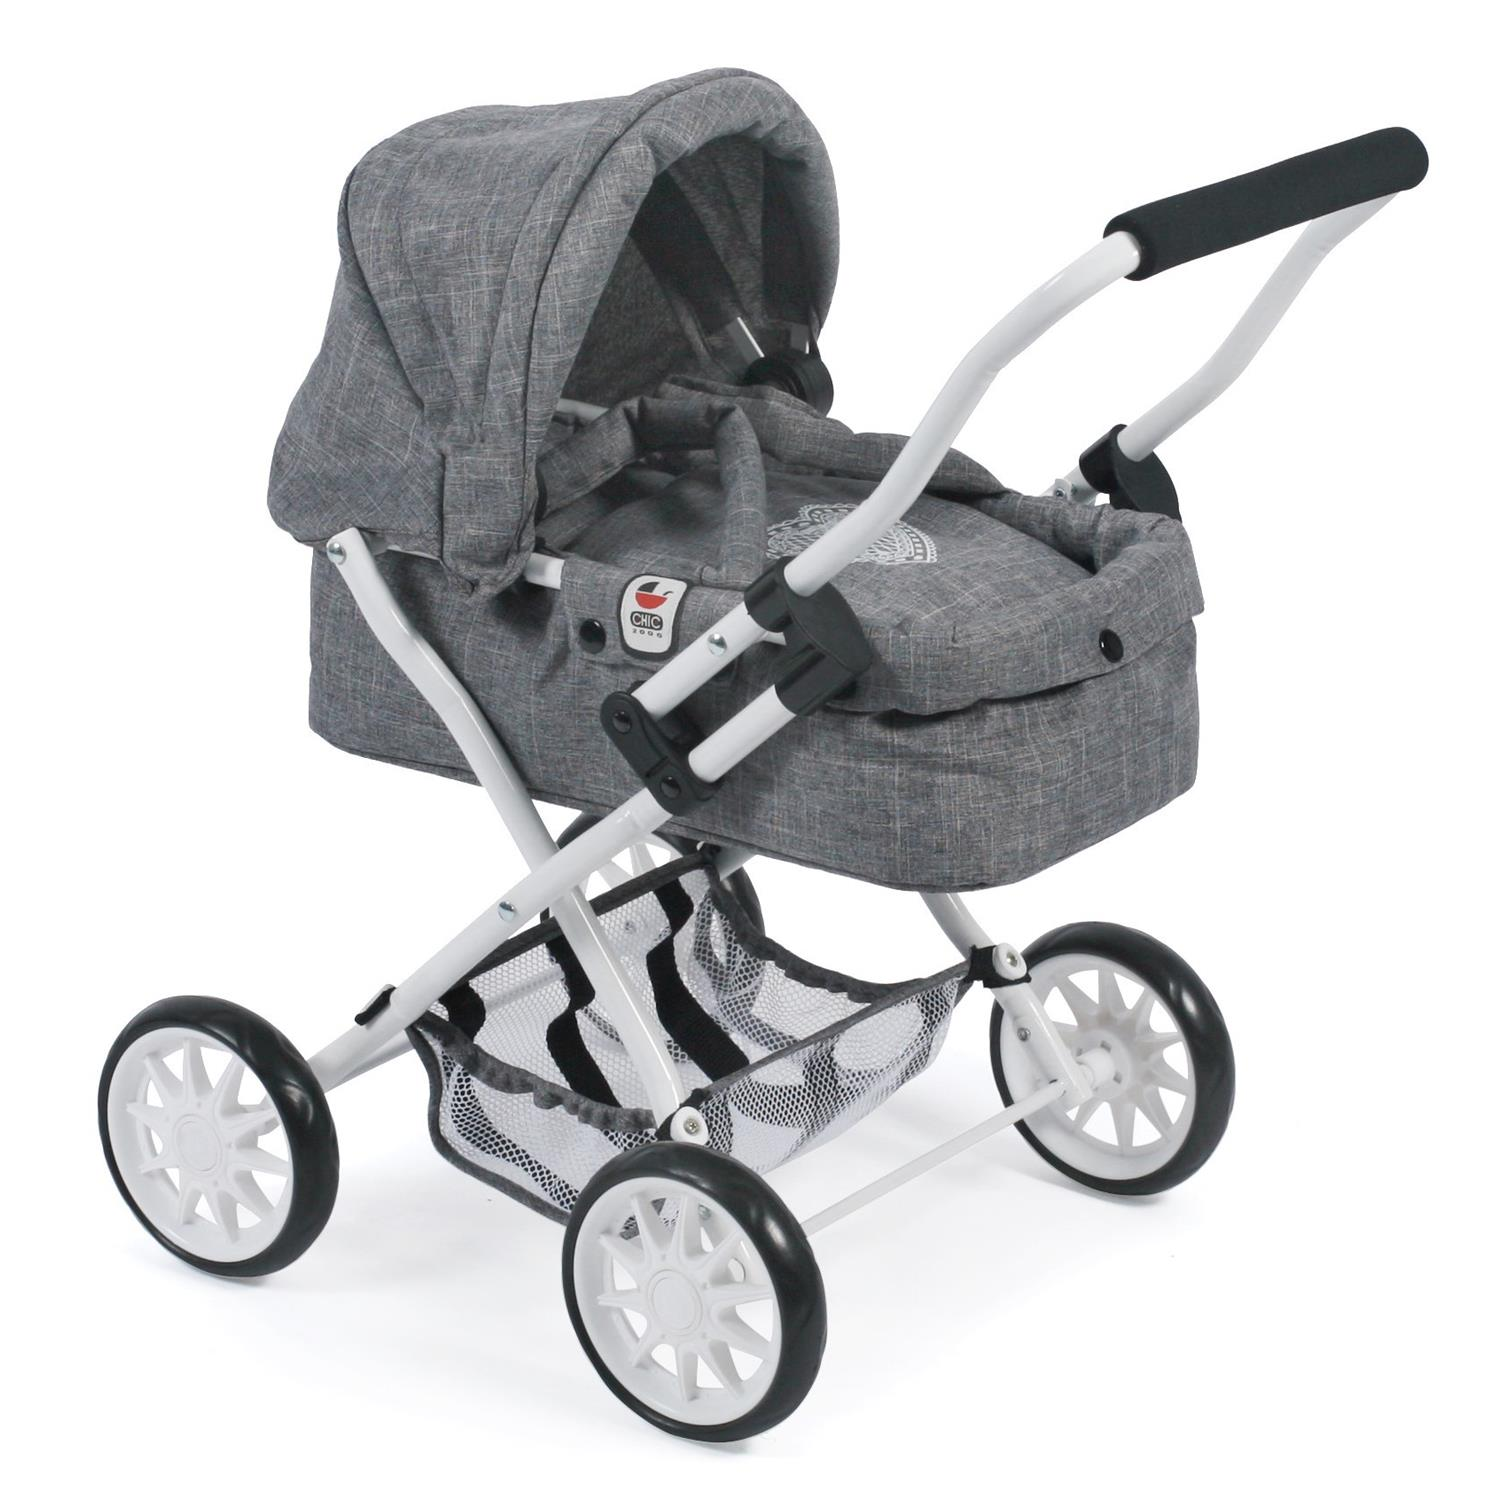 "Baby Born Küche Ebay Bayer Chic 2000 555 76 Mini-puppenwagen ""smarty"", Jeans Grey"